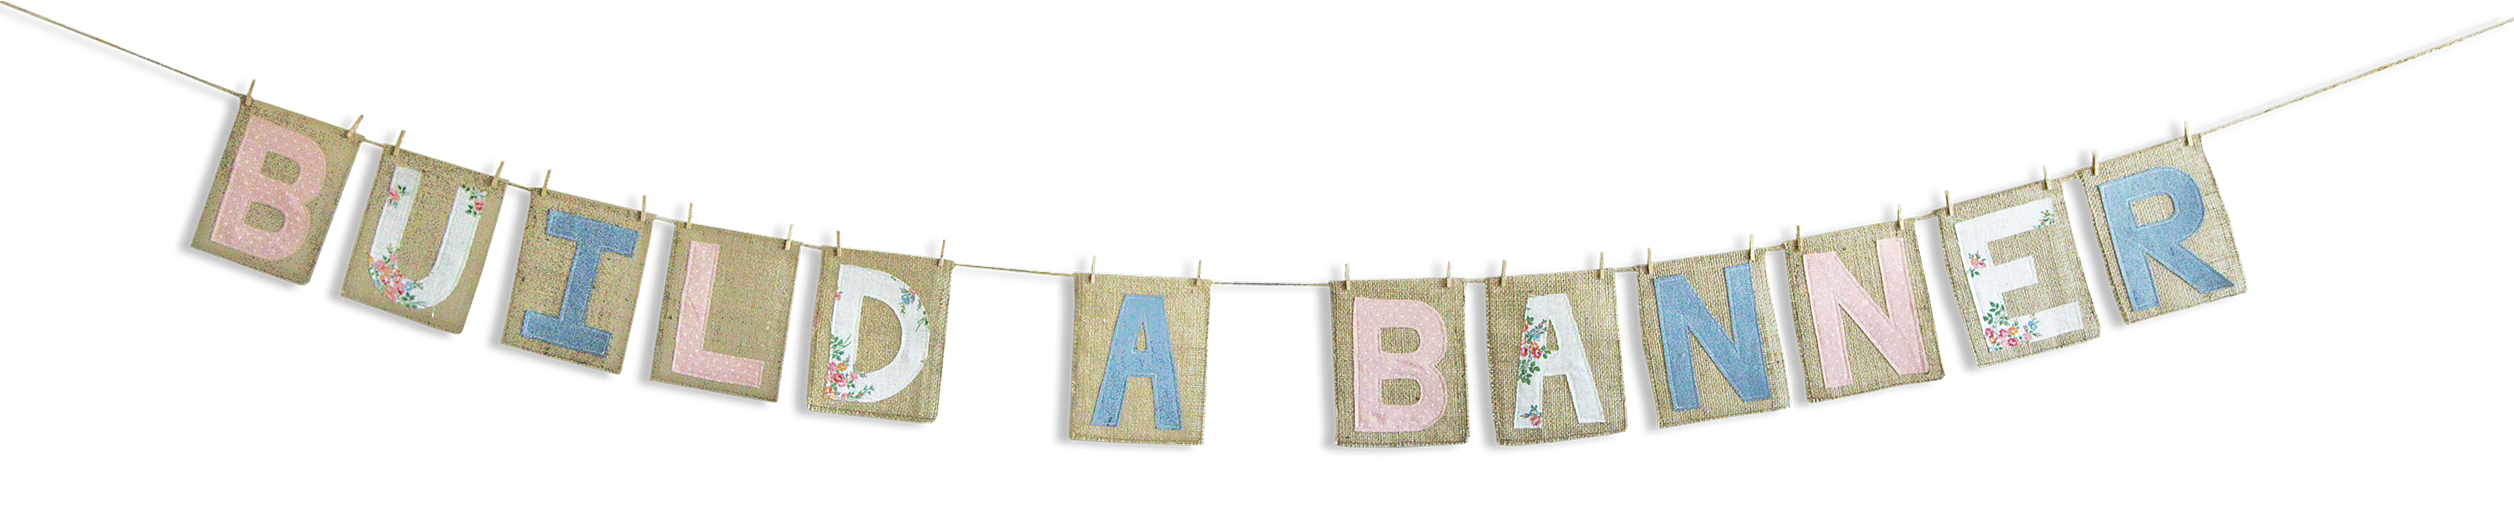 Burlap banner png. Build a boii home